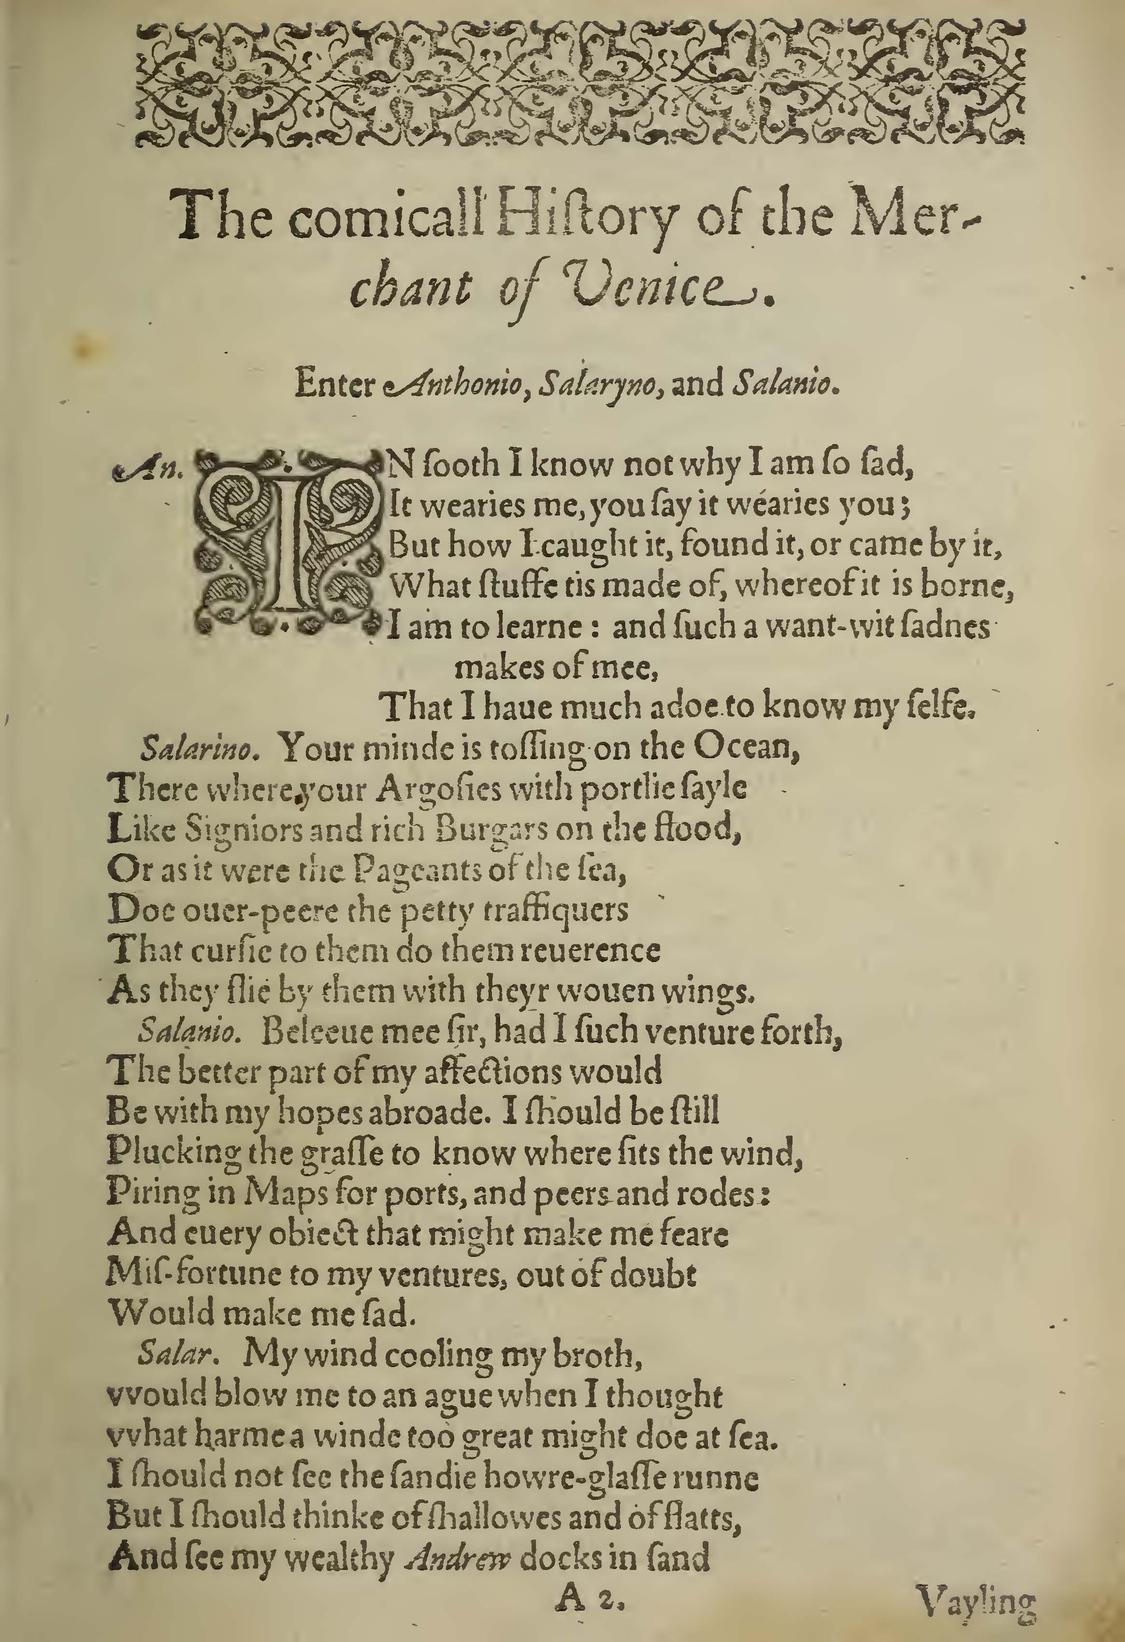 the merchant of venice essay shylock The merchant of venice is a 16th-century play written by william shakespeare in which a merchant in venice must default on a large loan provided by a jewish moneylender, shylock.